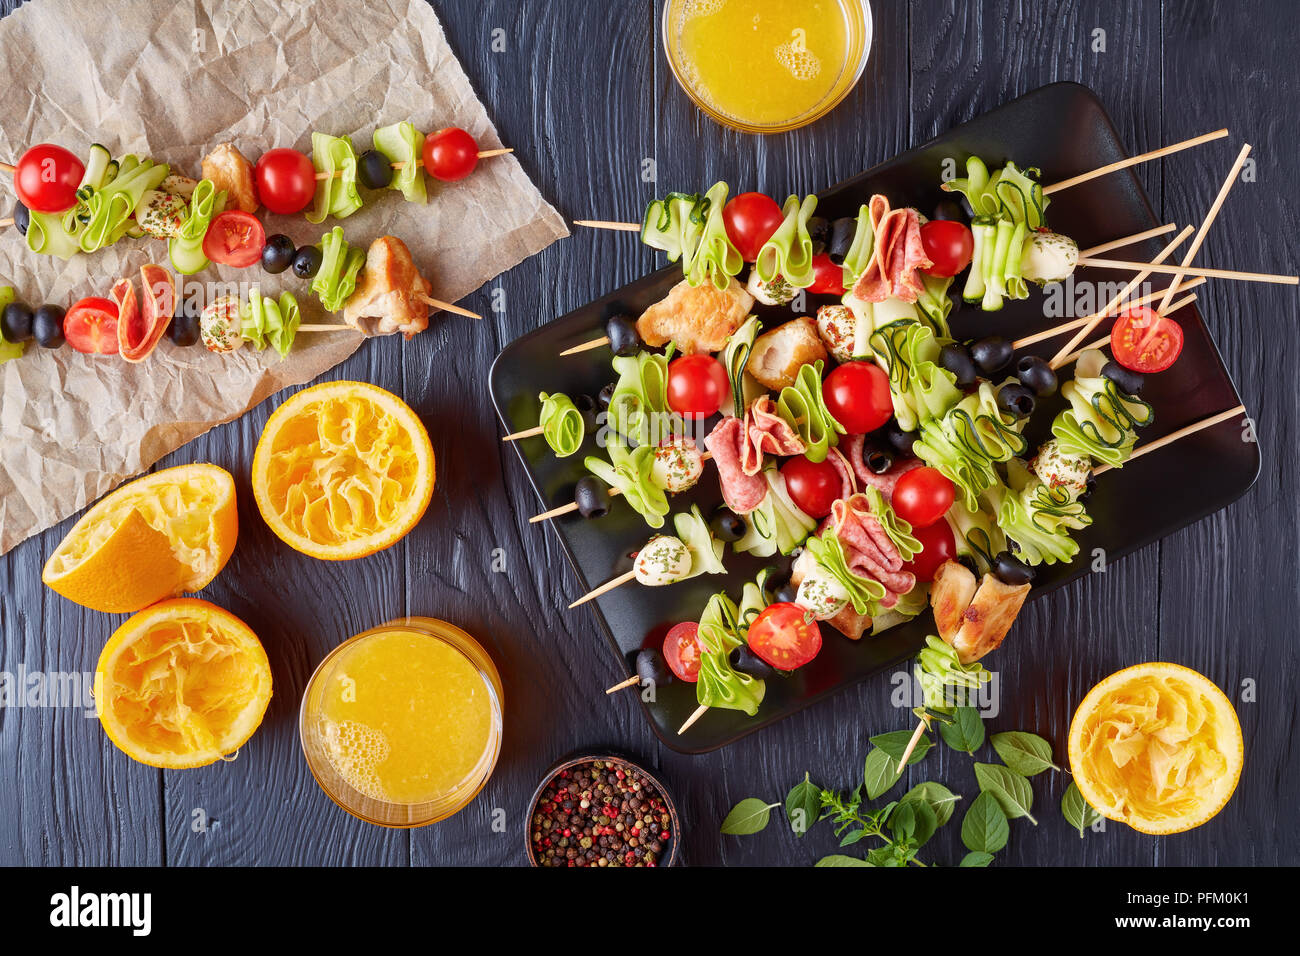 antipasto skewers with chicken meat, raw zucchini, cherry tomatoes,  mozzarella balls, salami slices, olives on a plate on a wooden table with orange  - Stock Image